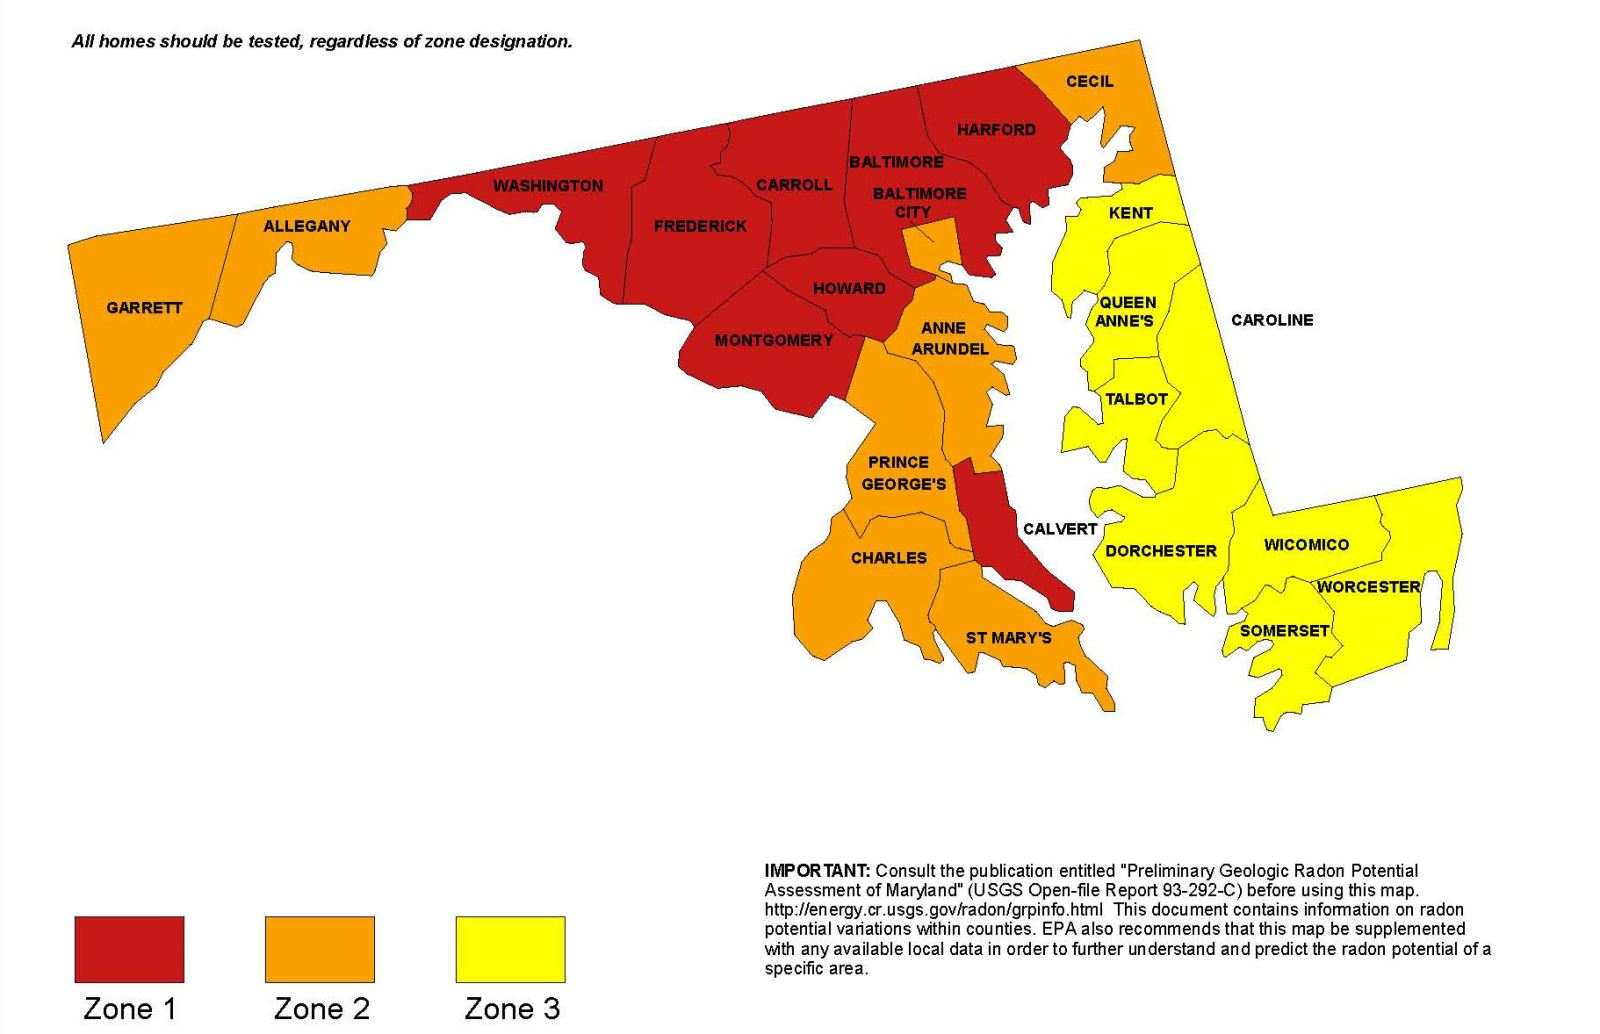 Map of the Maryland Counties' radon zones. Montgomery County is in Zone 1 with the highest risk.